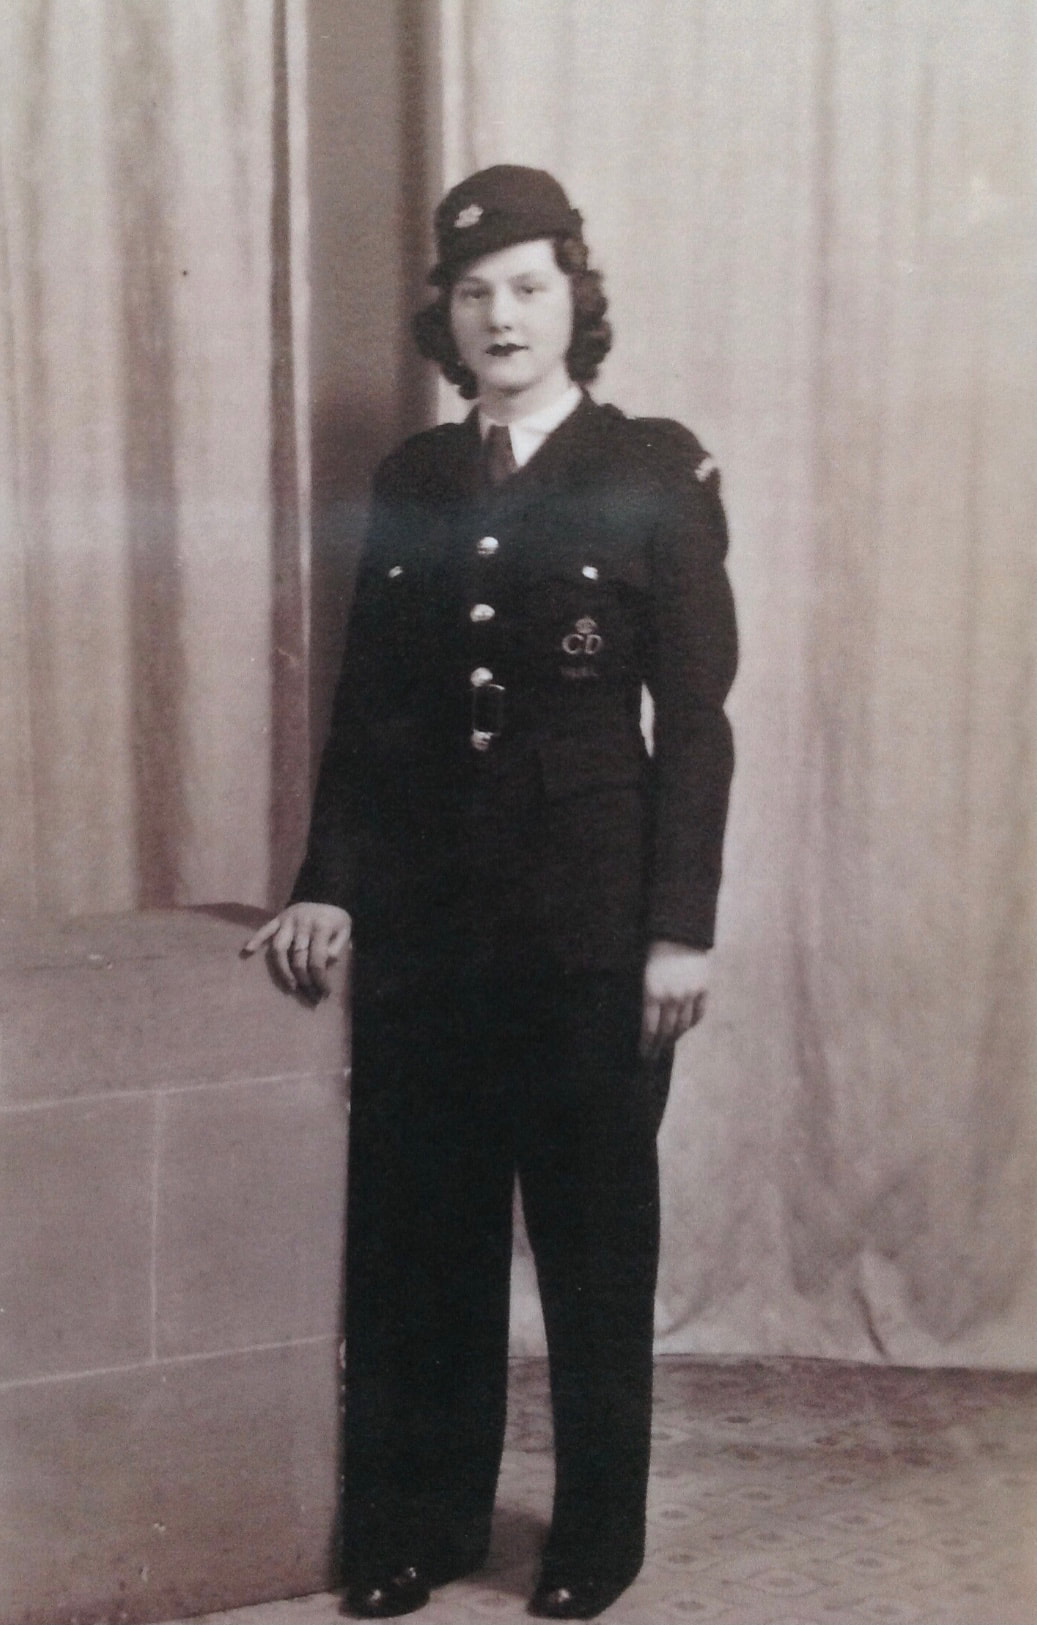 Emily Weston - member of Hull's Civil Defence during WW2